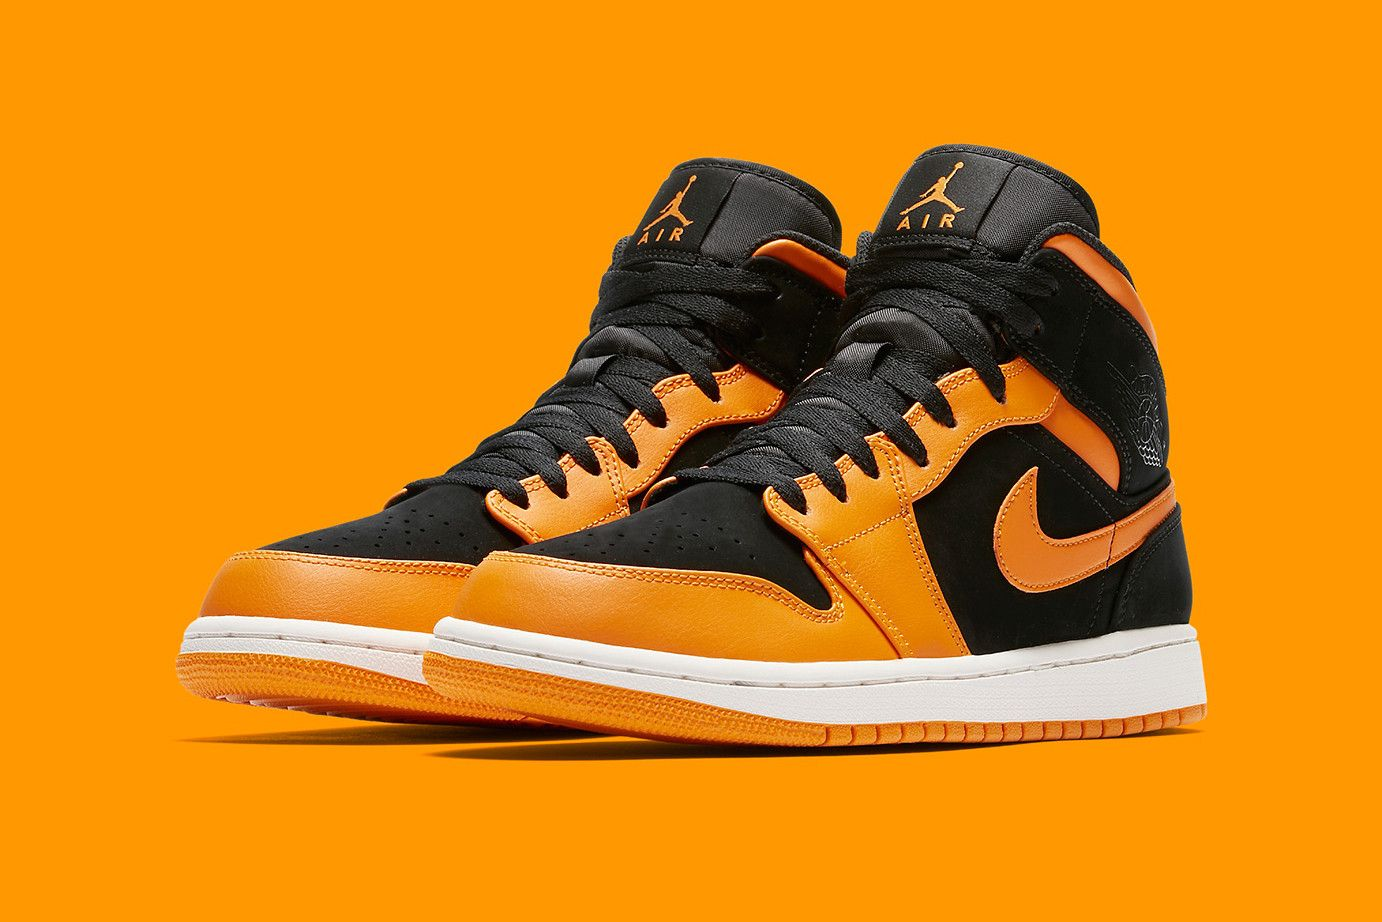 air jordan 1 mid homme orange